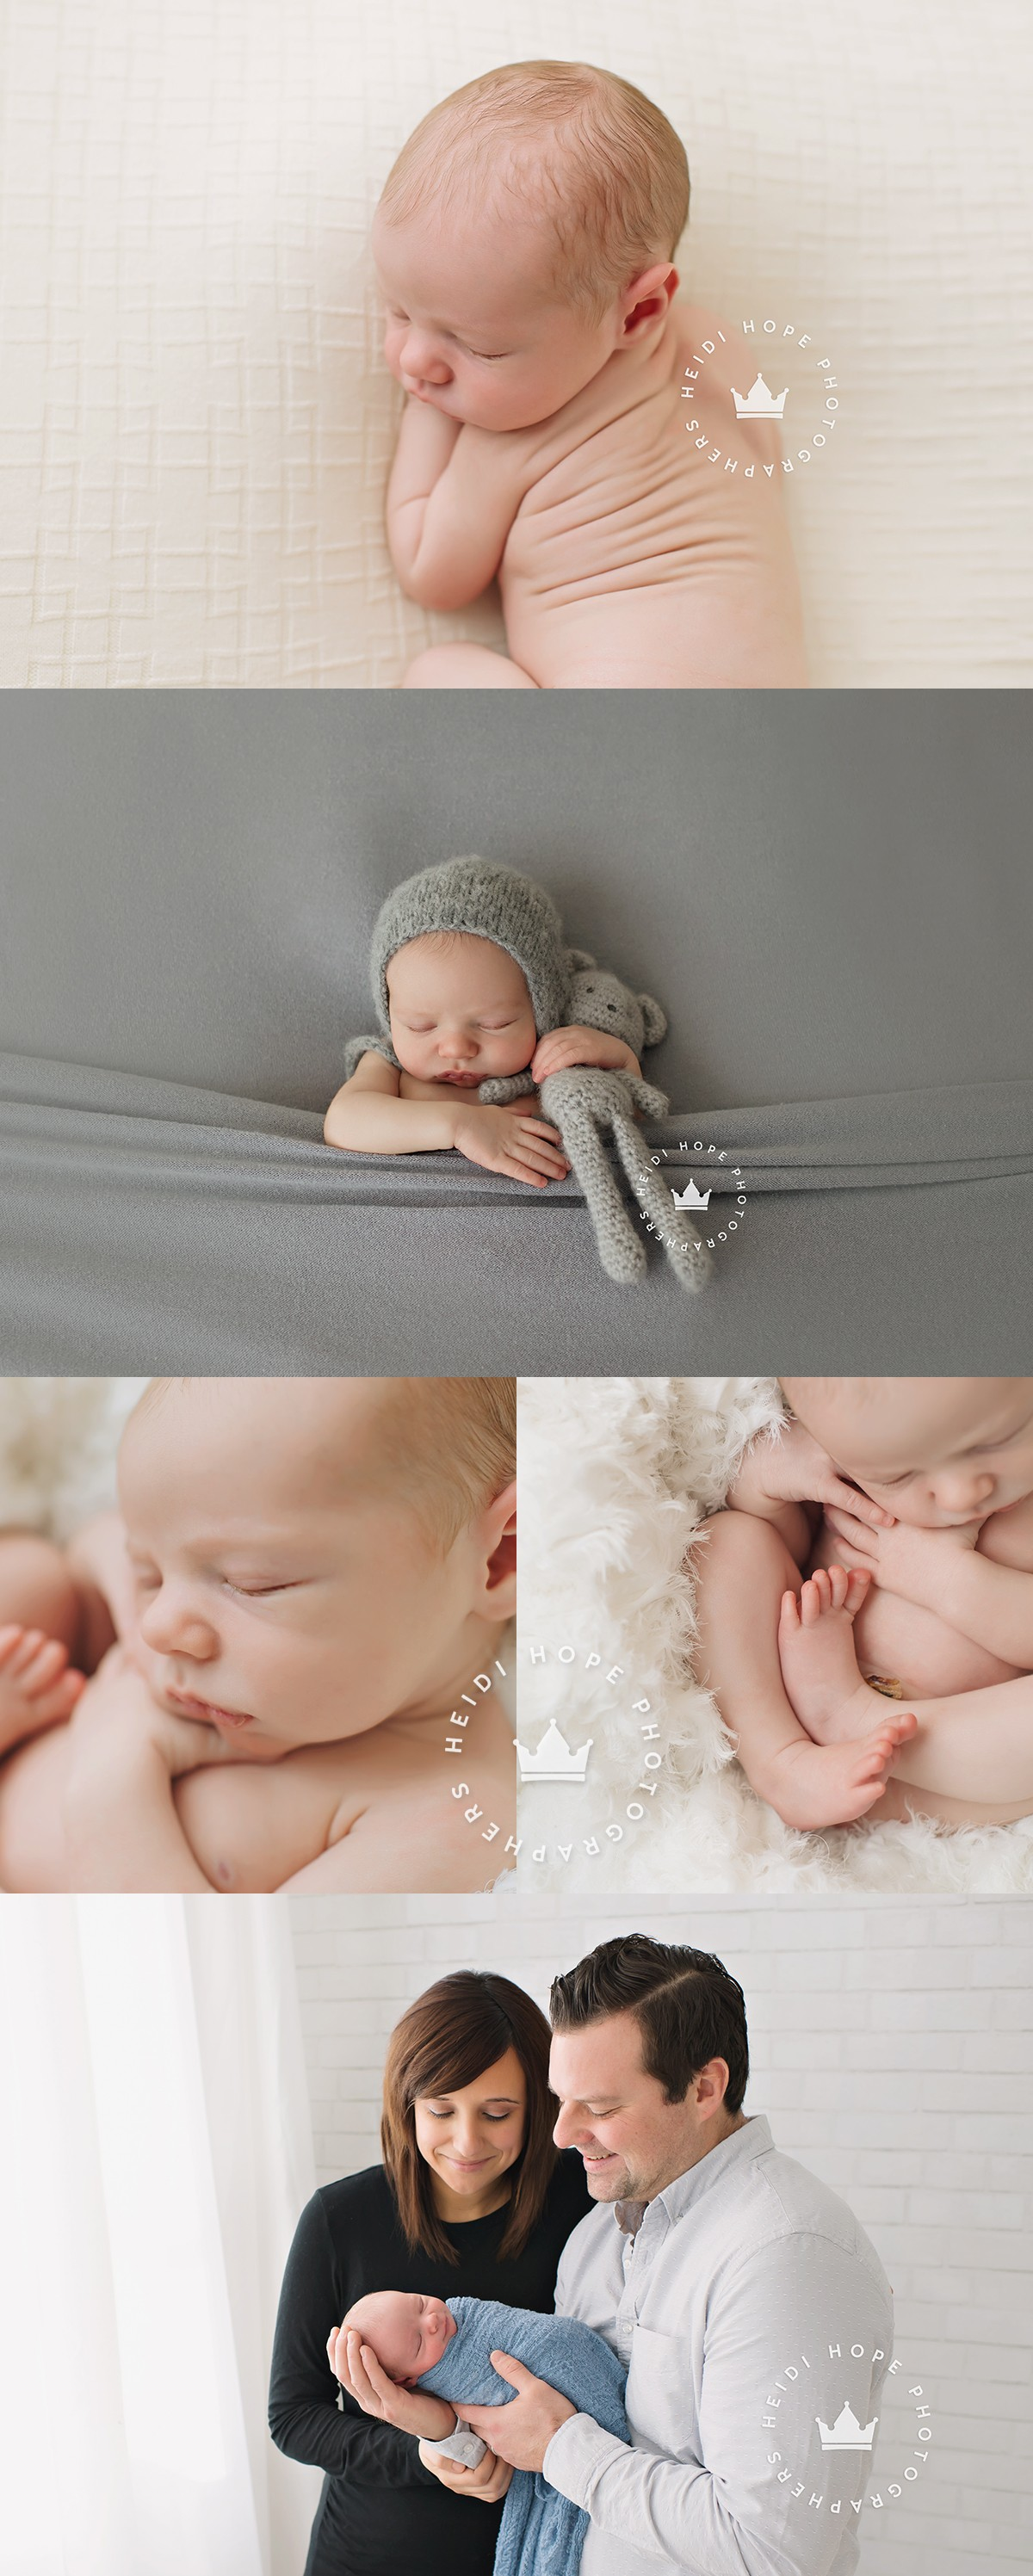 heidi hope rhode island newborn photographer